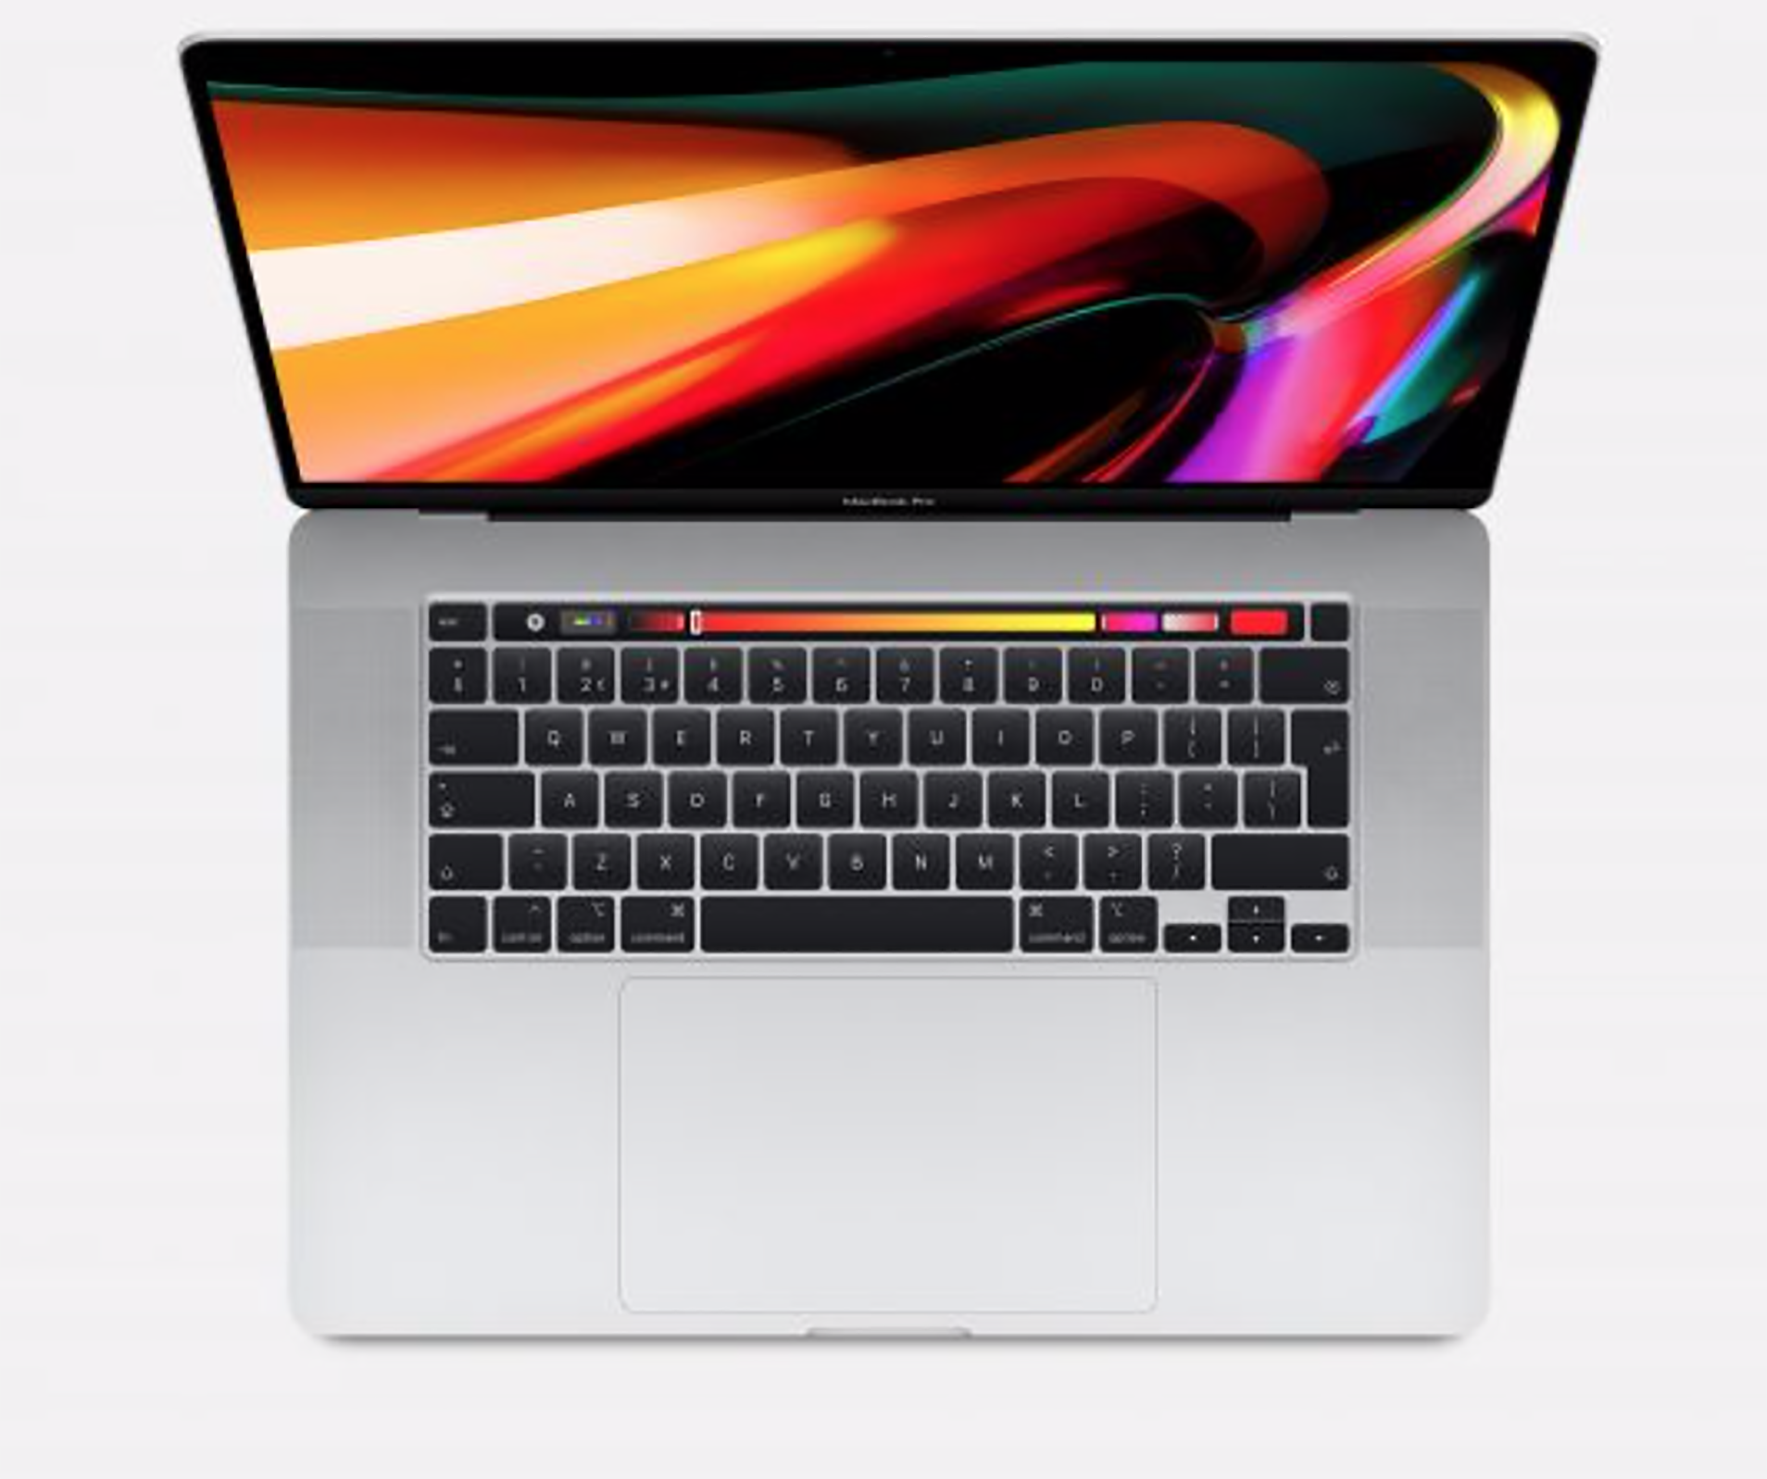 16 inch MacBook Pro Review: Apple's Technological Jack of All Trades!